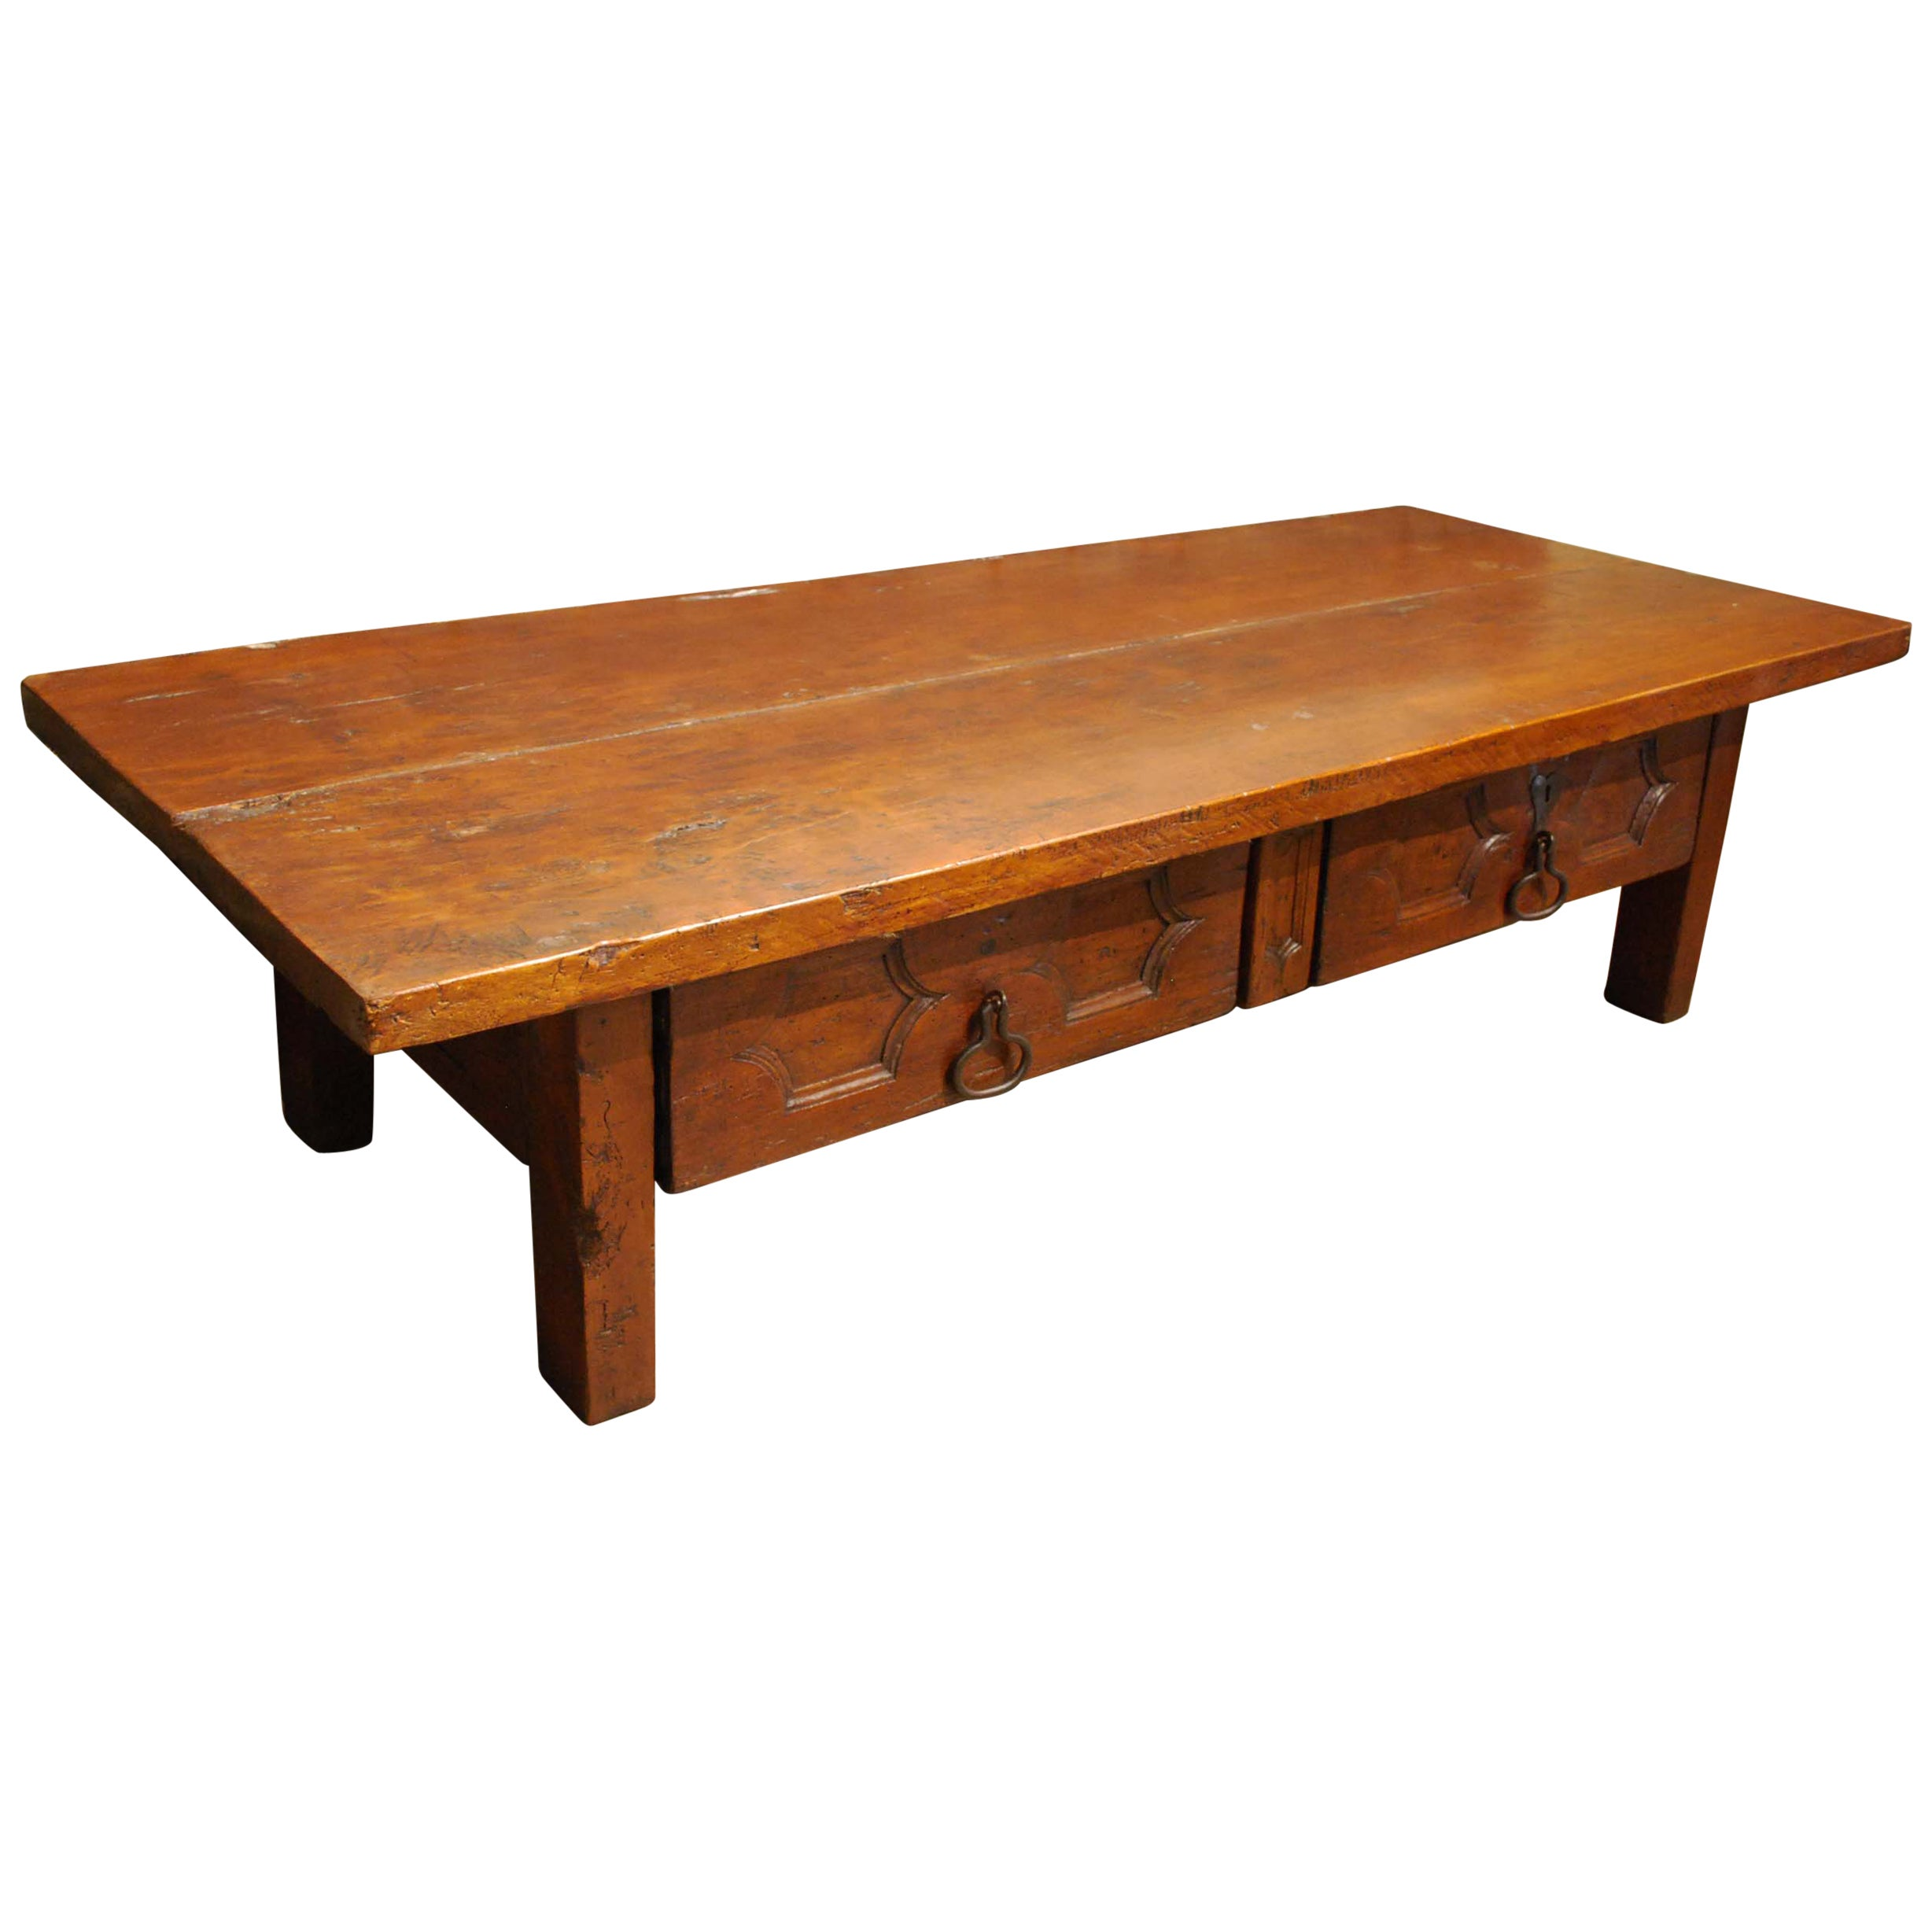 Antique 18th-Century Spanish Honey Color Chestnut Coffee Table or Low Table